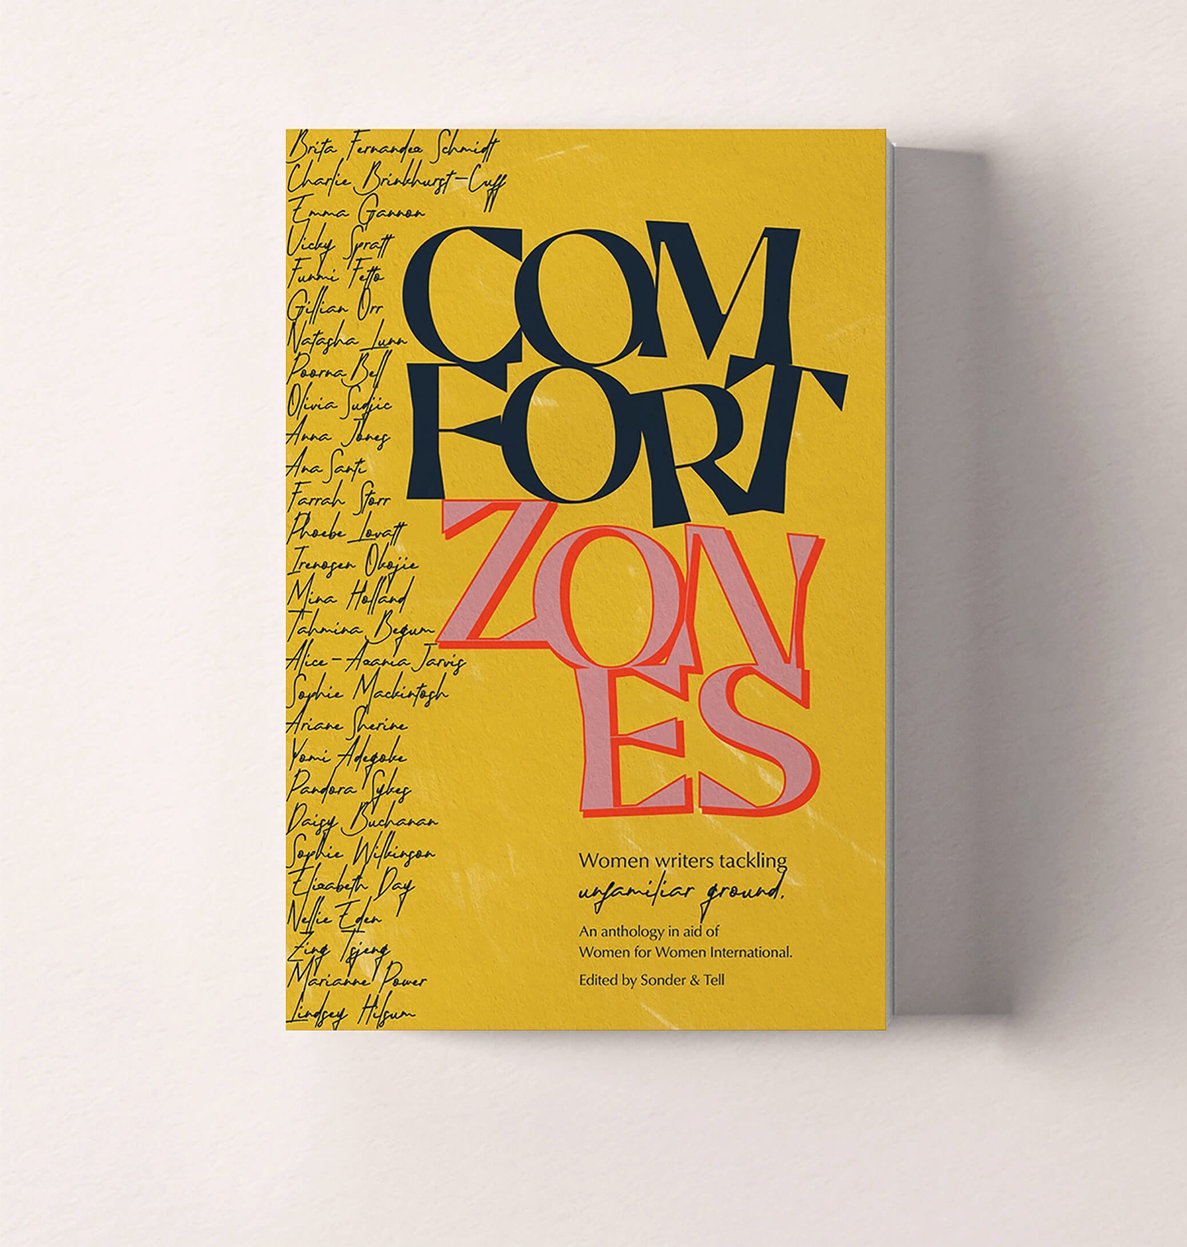 comfort zones published by Jigsaw - Comfort zones is a collection of essays, letters, and short stories written by 28 women breaking away from their usual themes and norms to take on writing outside of their comfort zones. Some take on their first works of fiction, others take an unfiltered look back at past failures as well as ideas for a brighter future. It was published by Jigsaw, edited by Sonder & Tell, in aid of Women for Women International.